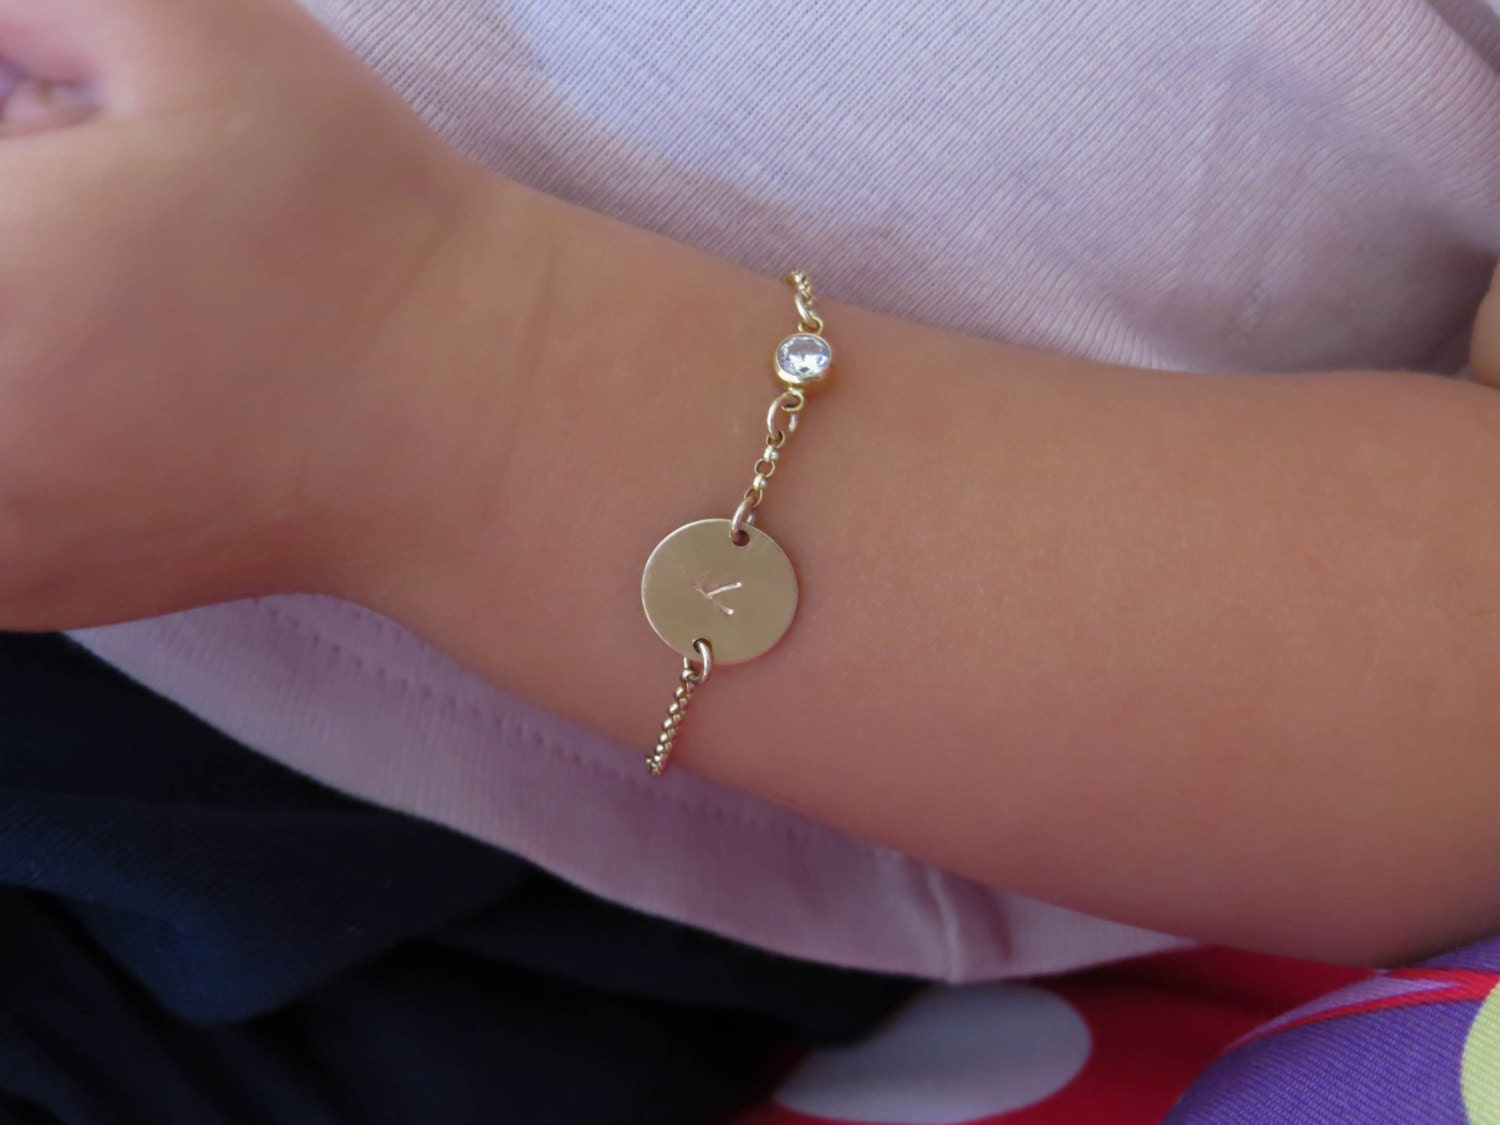 christening gold great infant my gift gifts bangle engraved bracelet years baby heart bangles